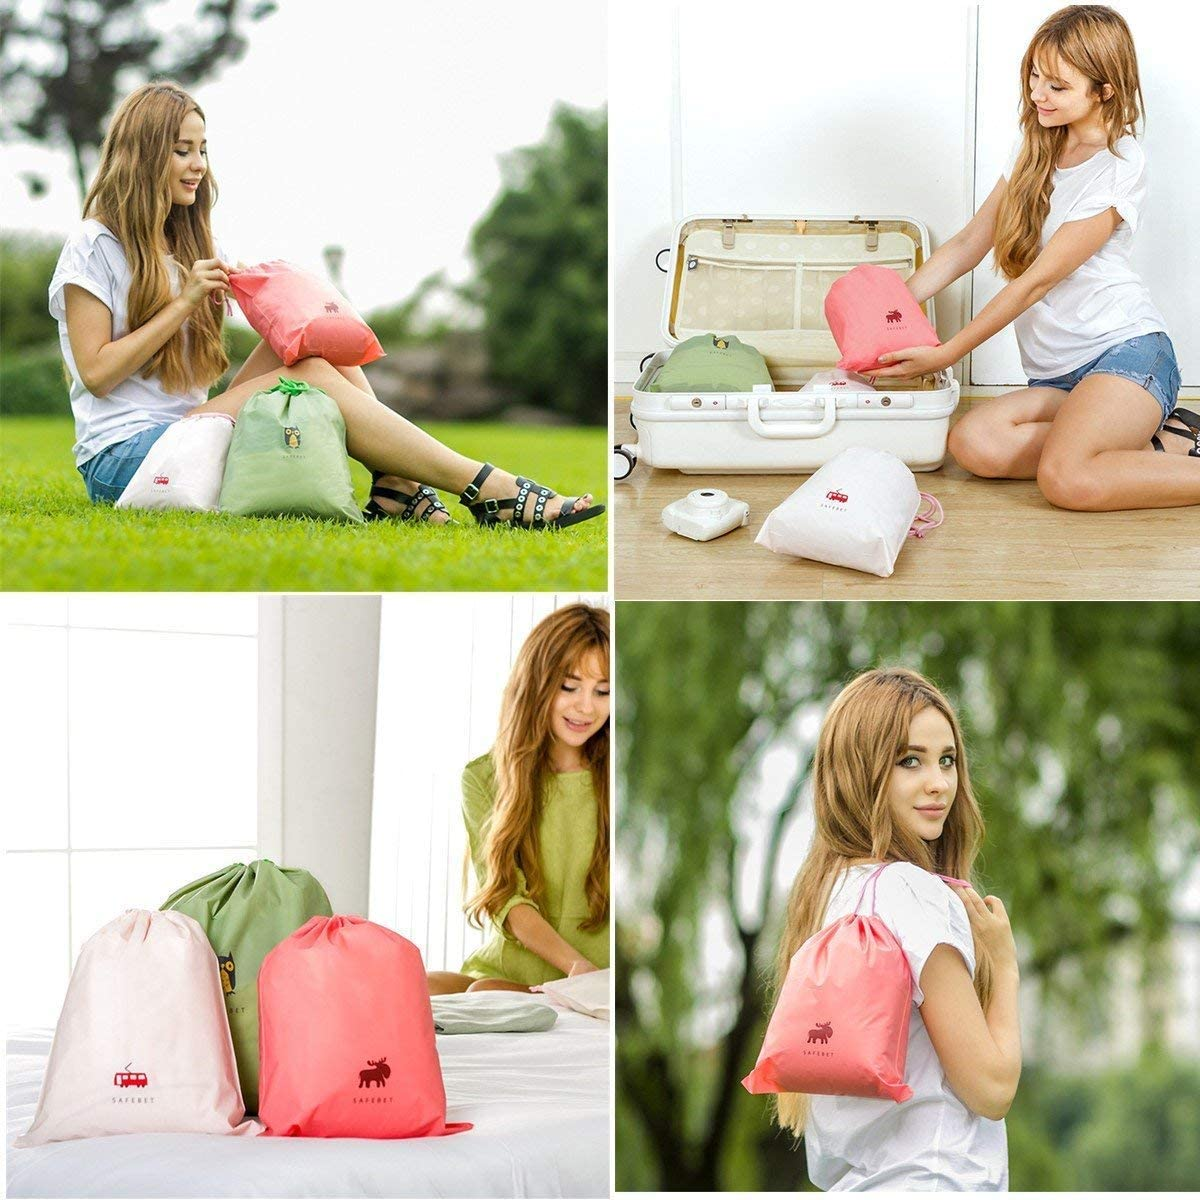 Creativee Waterproof Drawstring Bags,Storage Sack for Gym Sport Swim ,Travel Essential Clothes Packing Bag Laundry Toiletry Pouch